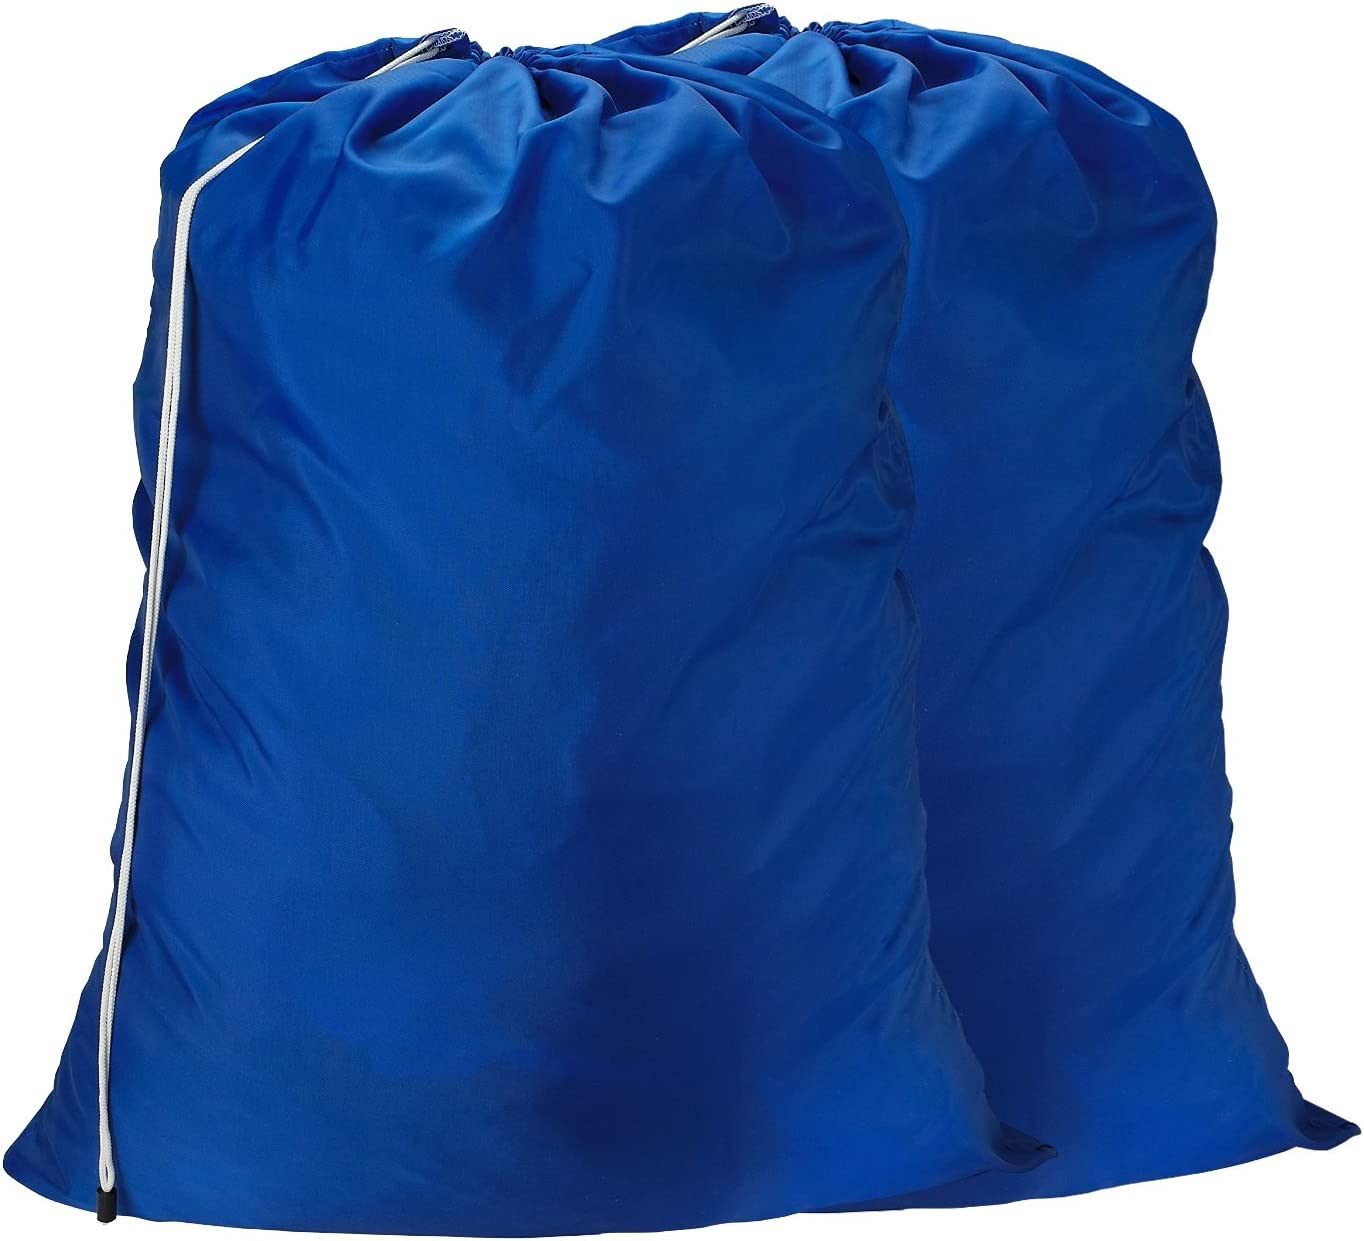 Nylon Laundry Bag - Locking Drawstring Closure and Machine Washable. These Large Bags will Fit a Laundry Basket or Hamper and Strong Enough to Carry up to Three Loads of Clothes. (Royal Blue | 2-PACK)